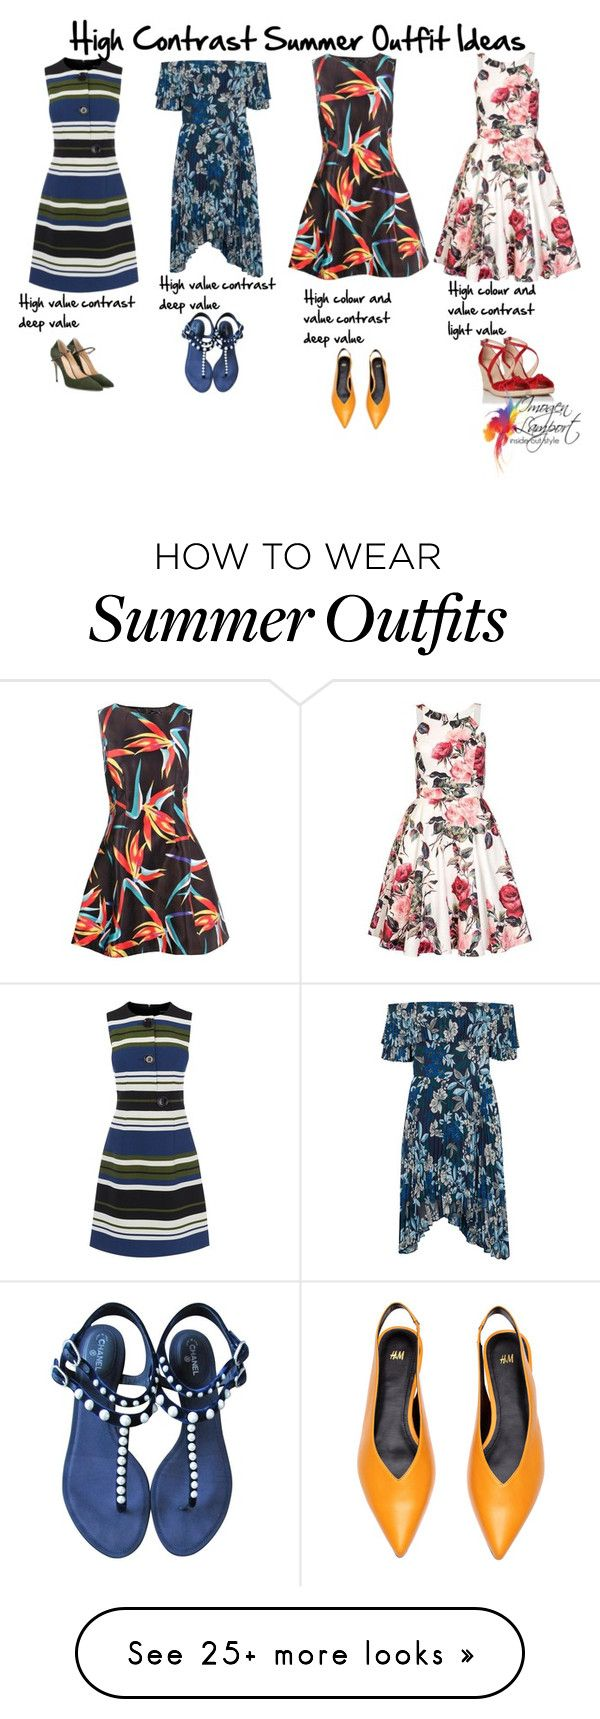 """18e2b7c5c93 Summer Outfits   """"high contrast summer outfits"""" by imogenl on Polyvore  featuring Karen Millen"""